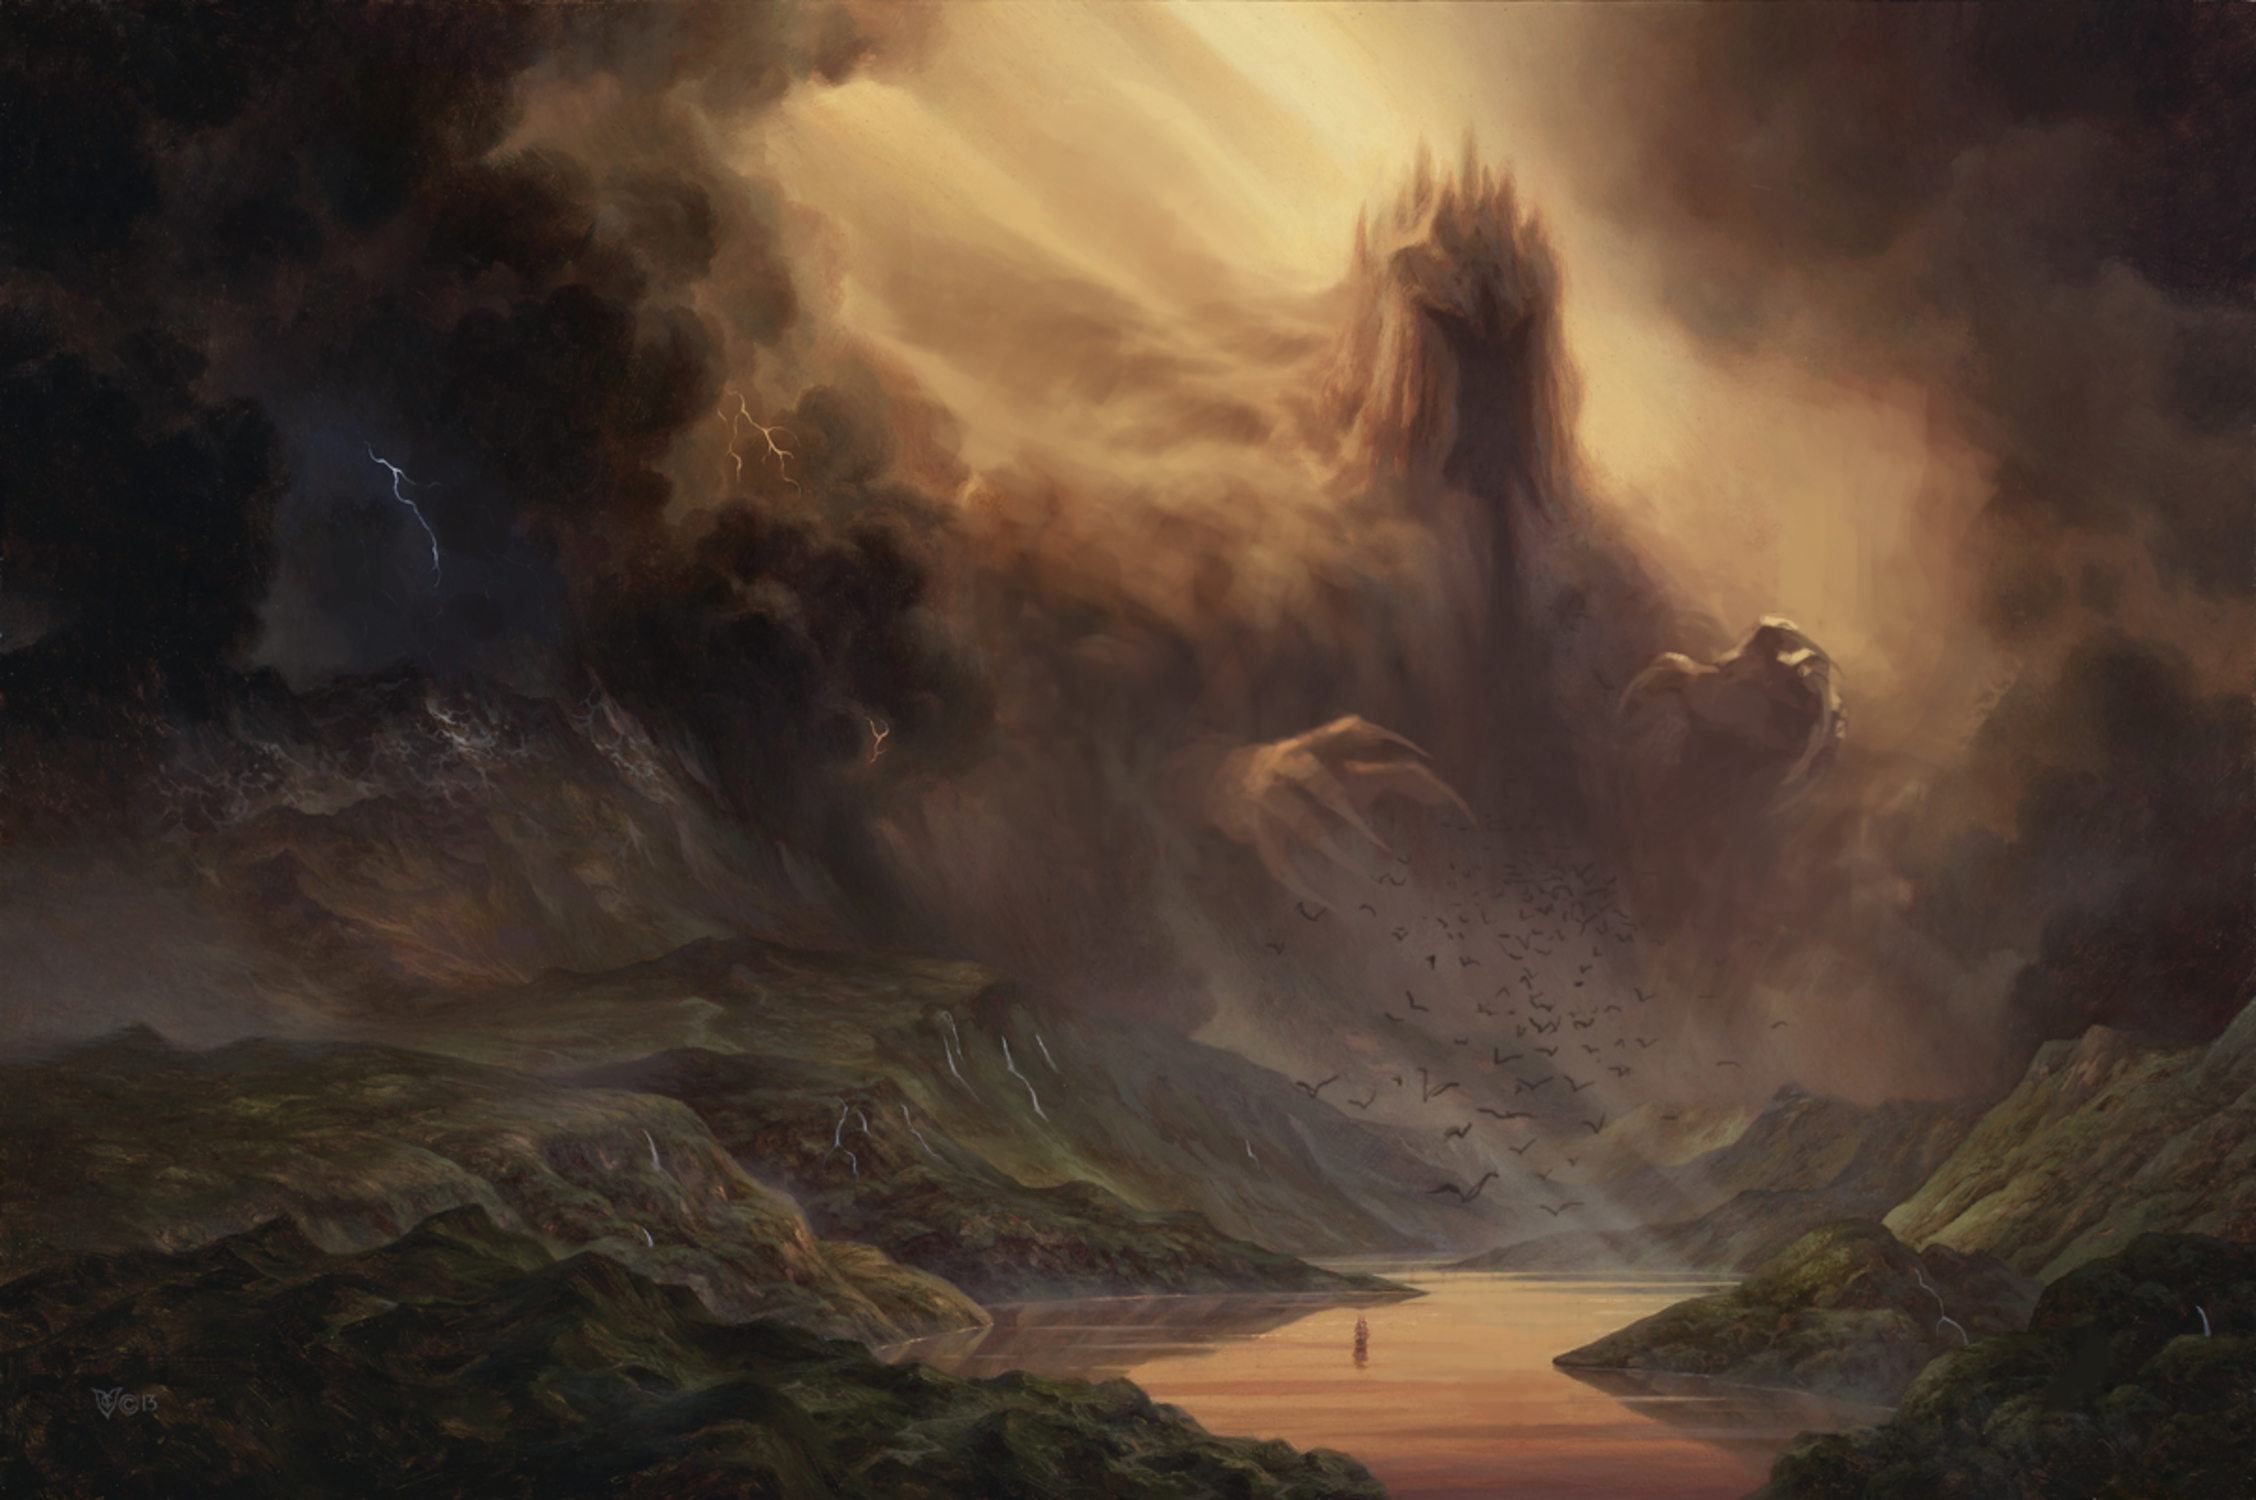 King Of The North Artwork by Christophe Vacher